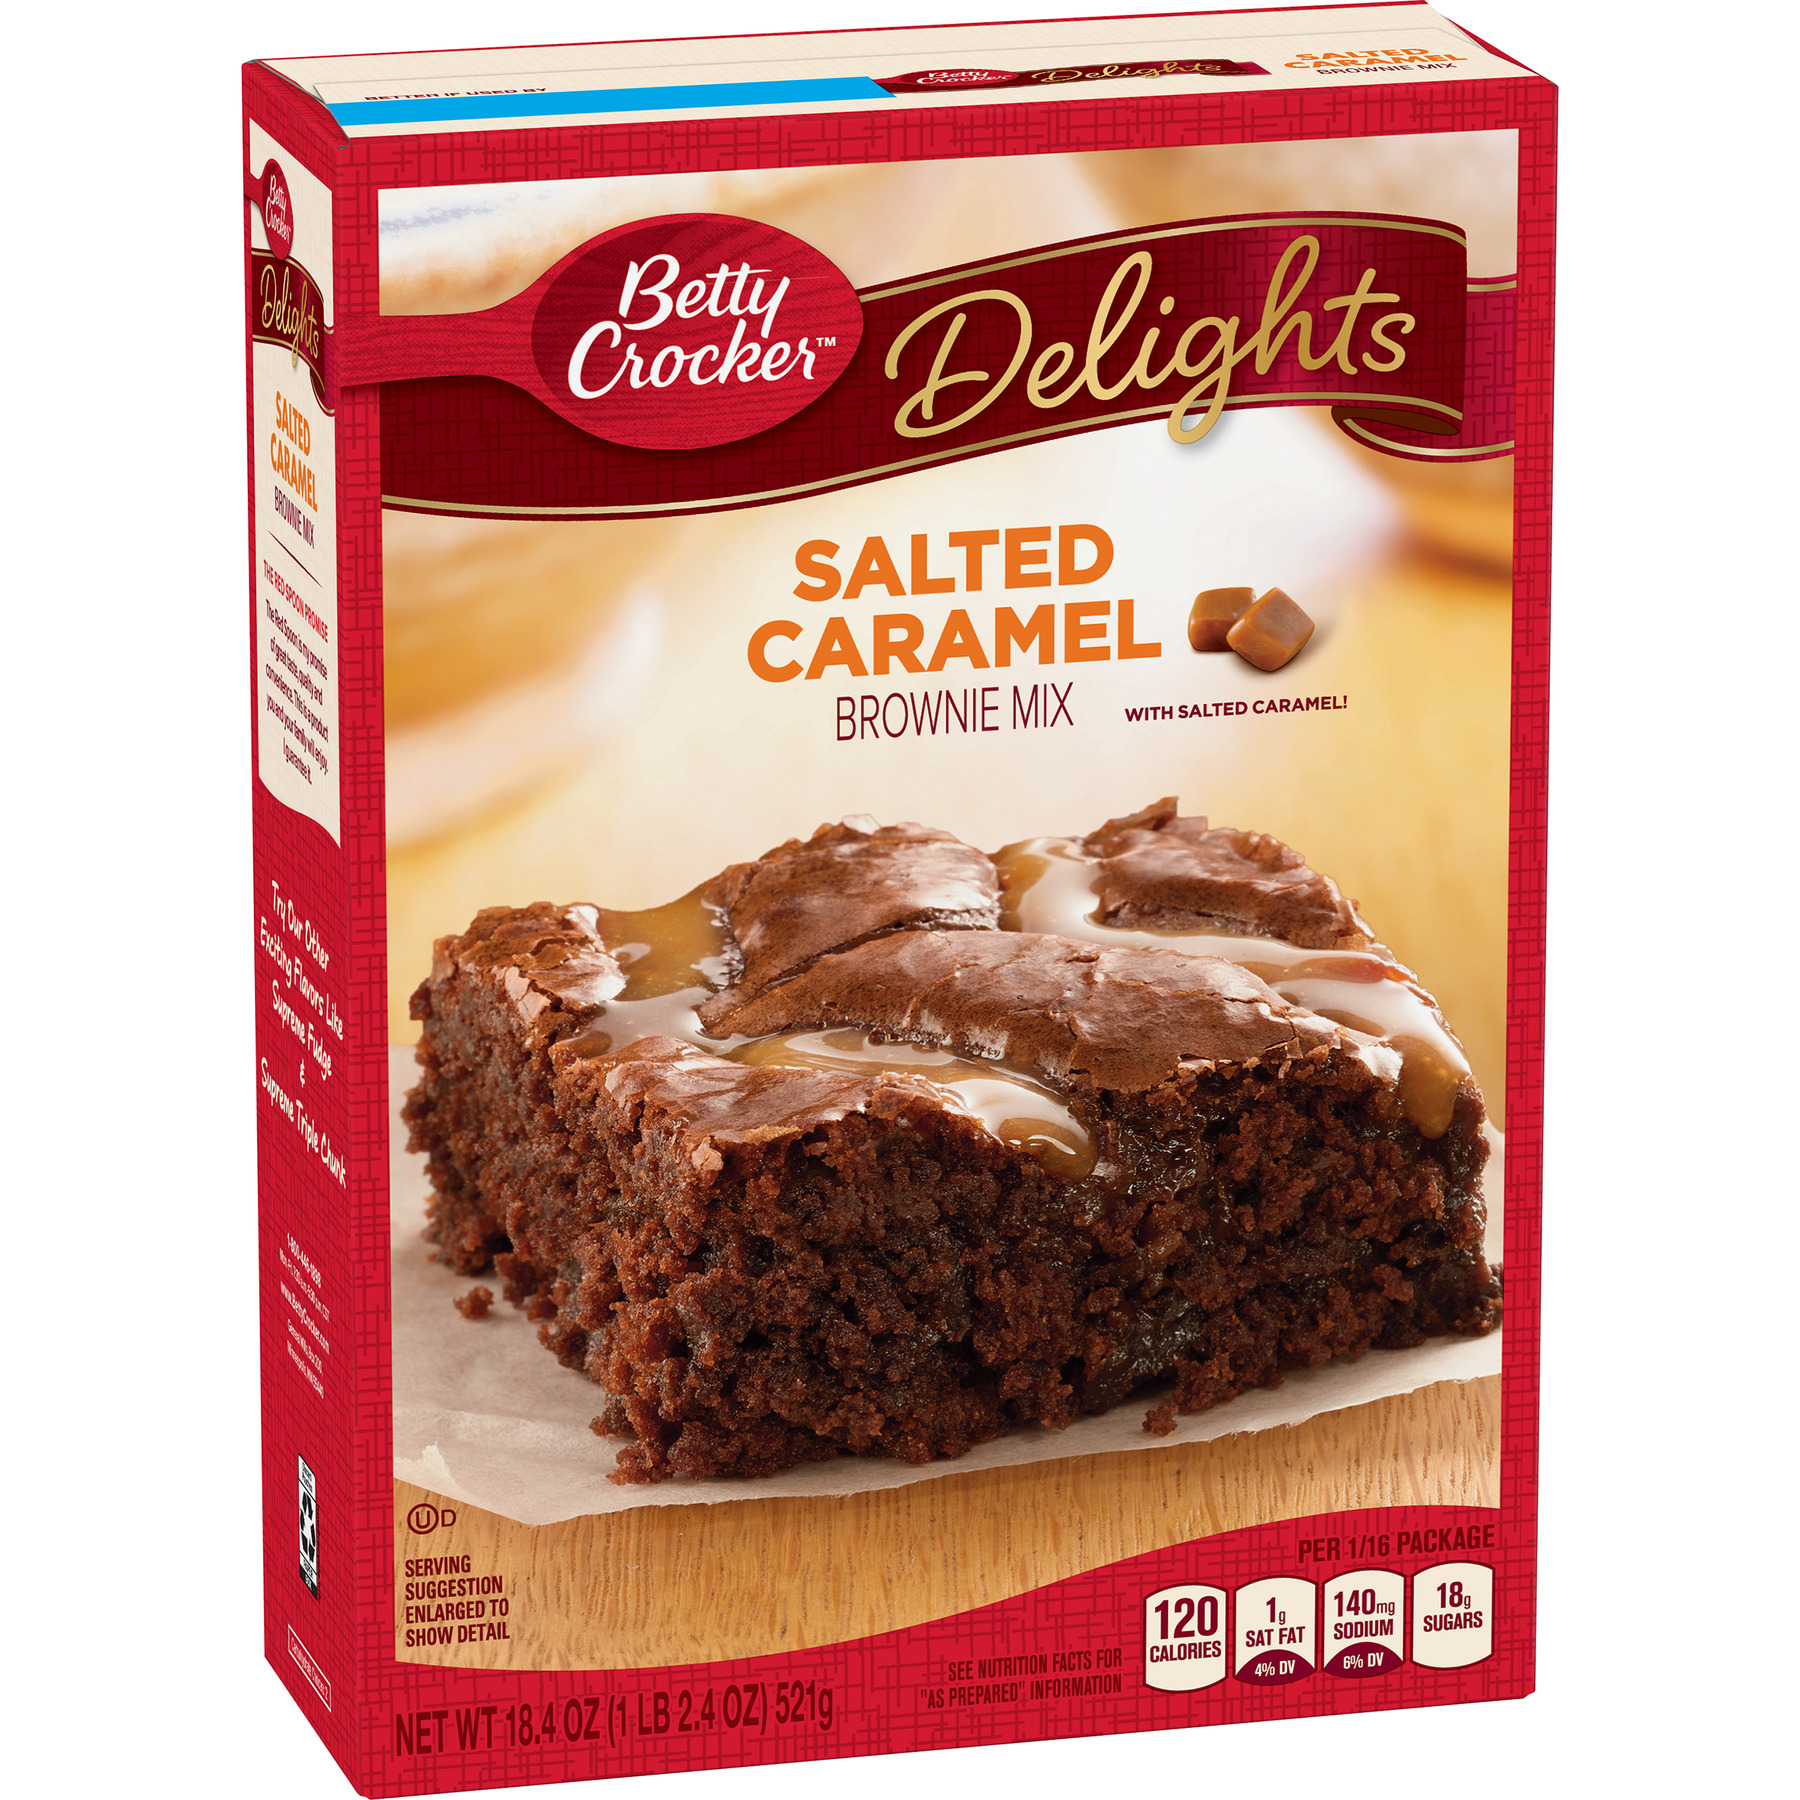 (4 Pack) Betty Crocker Delights Salted Caramel Brownie Mix, 18.4 oz